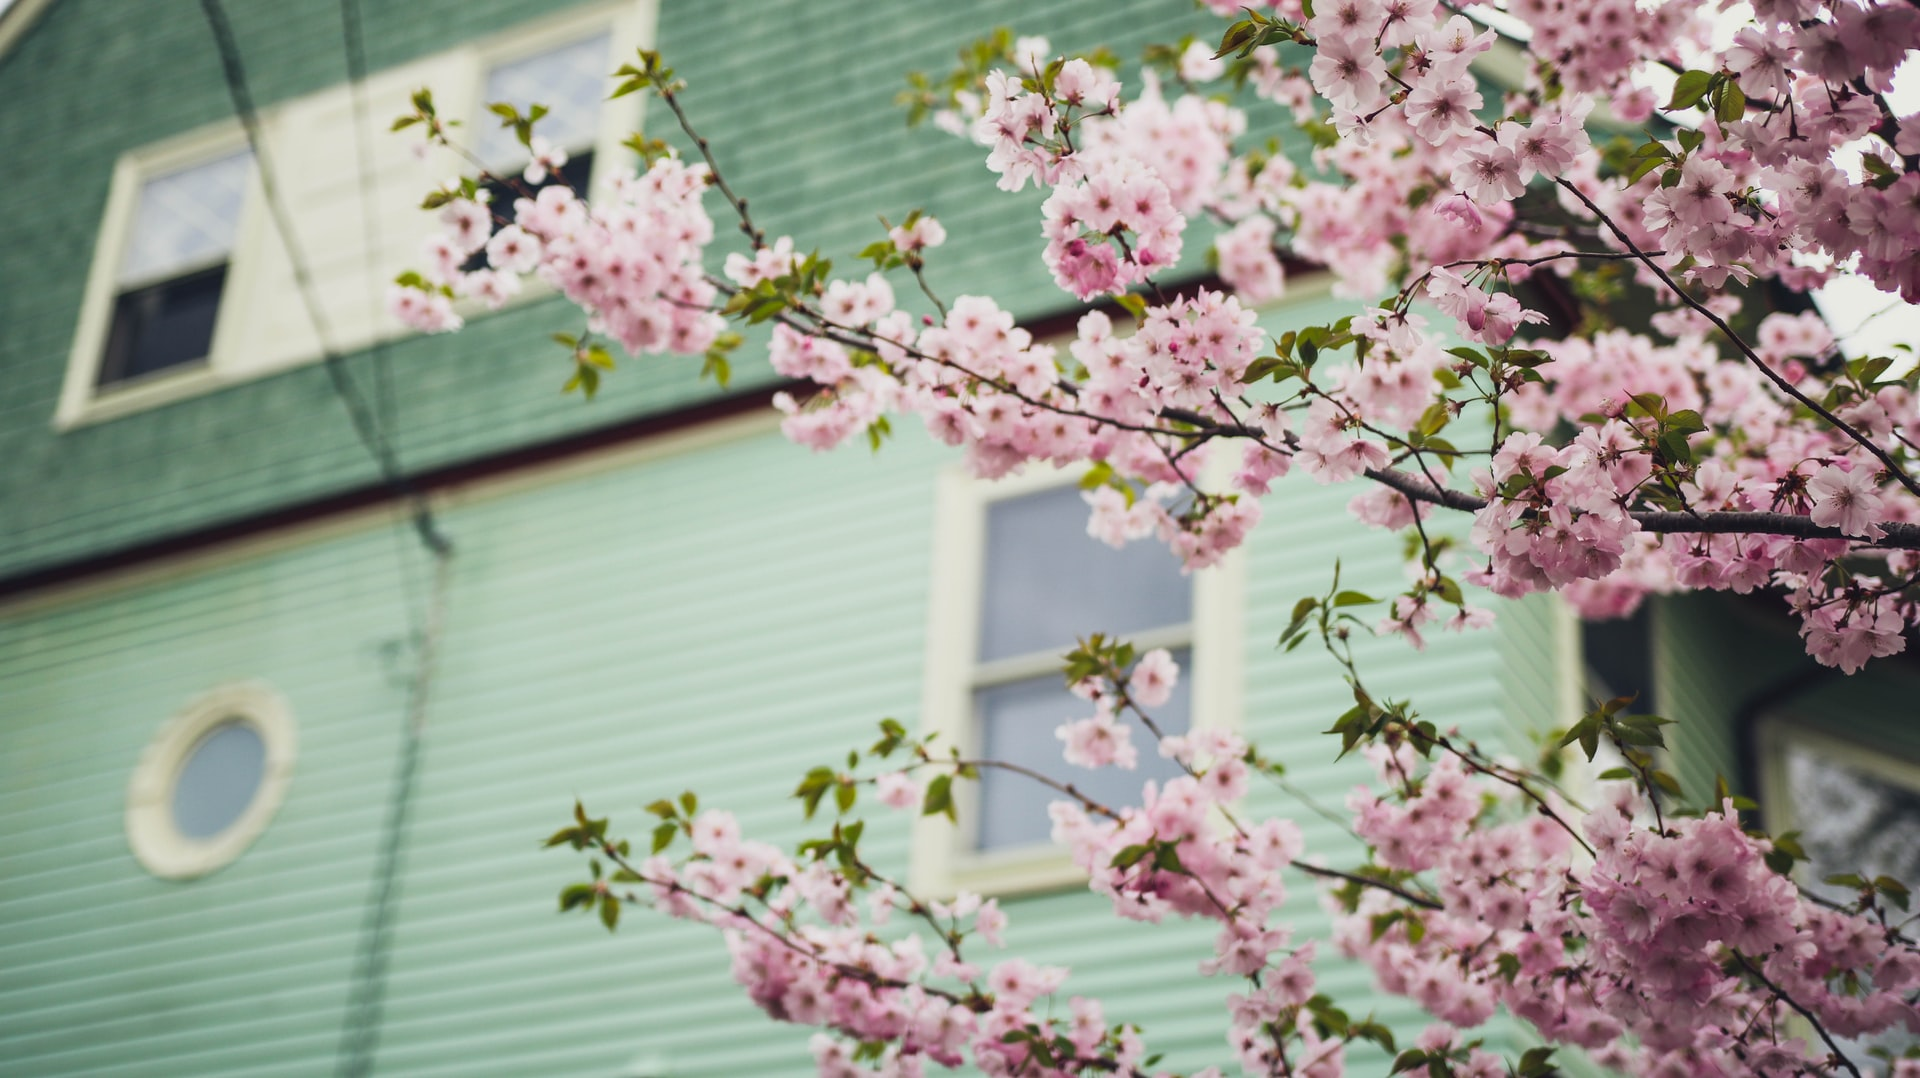 Cherry Blossoms in front of green house